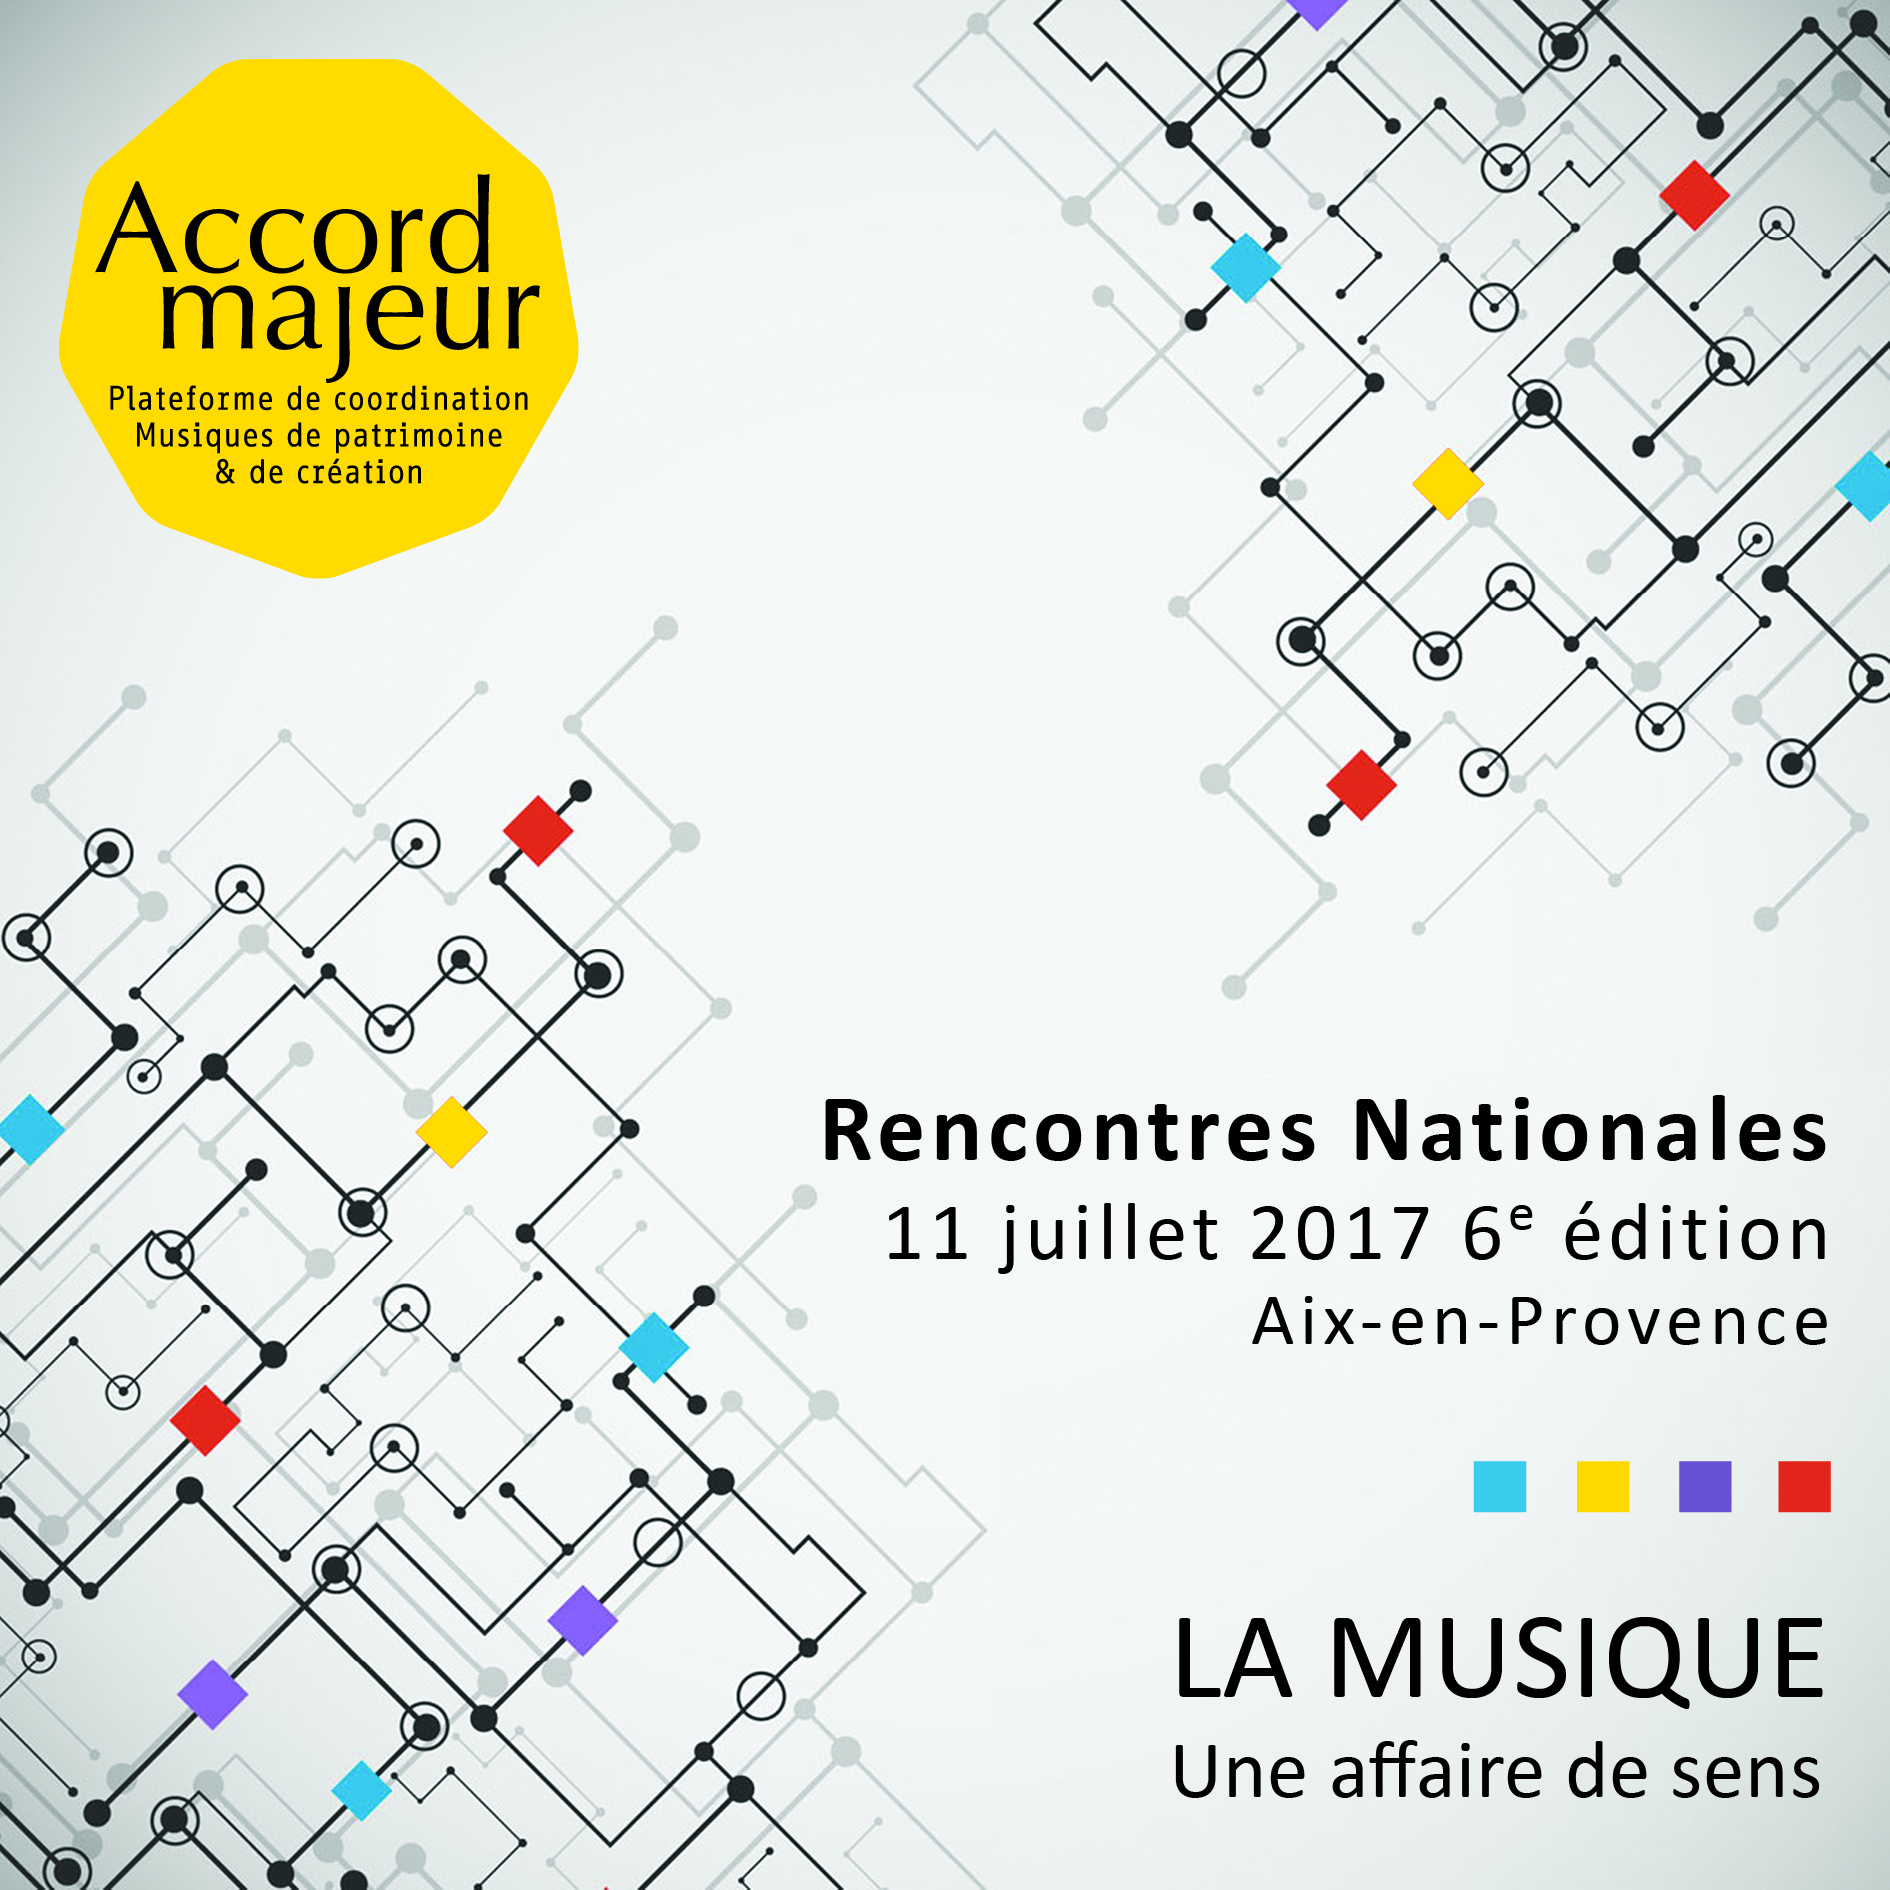 7 mes rencontres nationales Accord Majeur